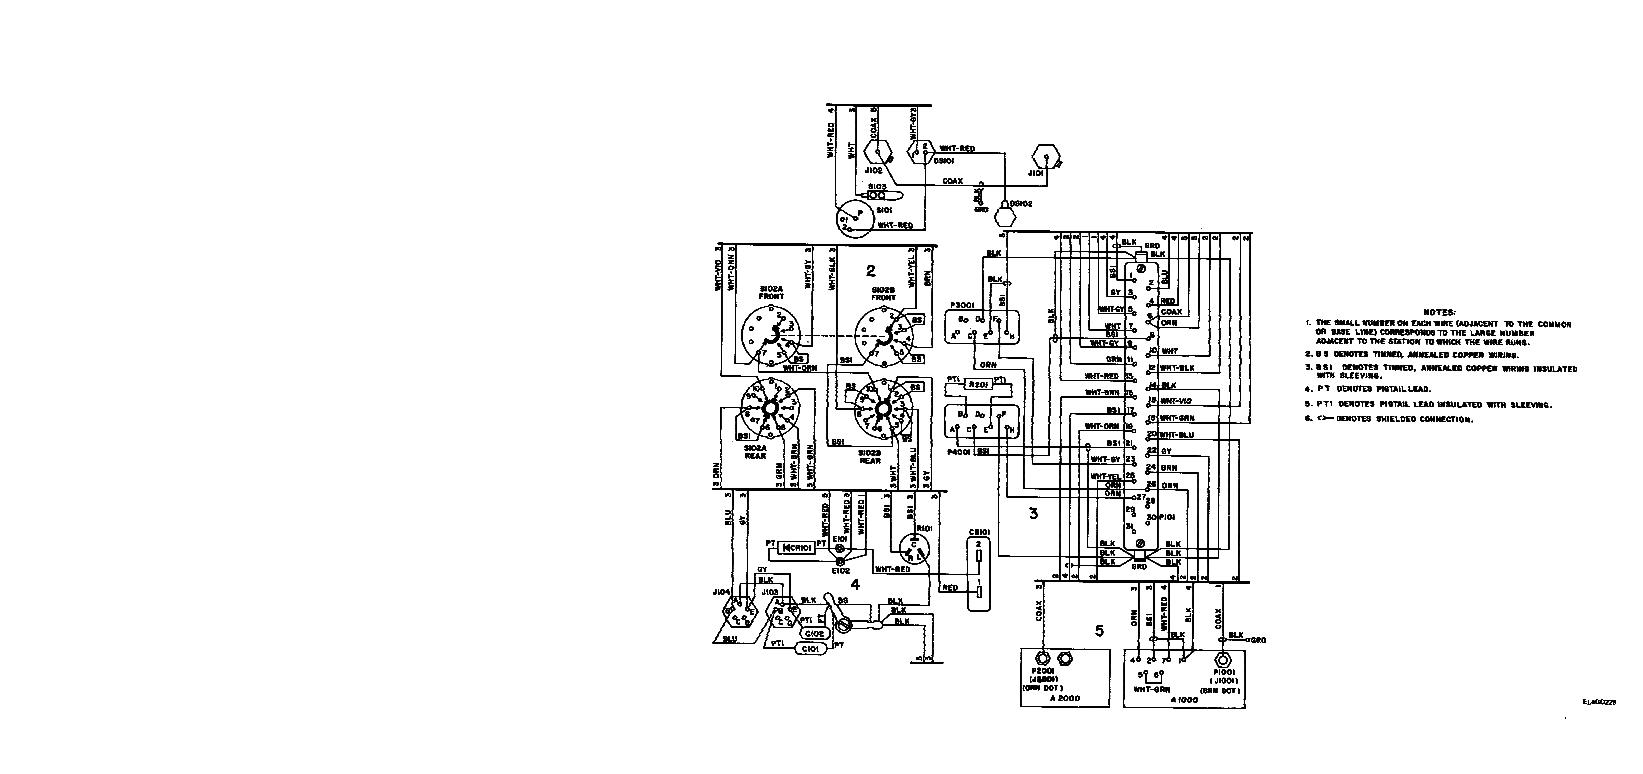 FO-2. R-442(*)/VRC front panel assembly A100 wiring diagram.